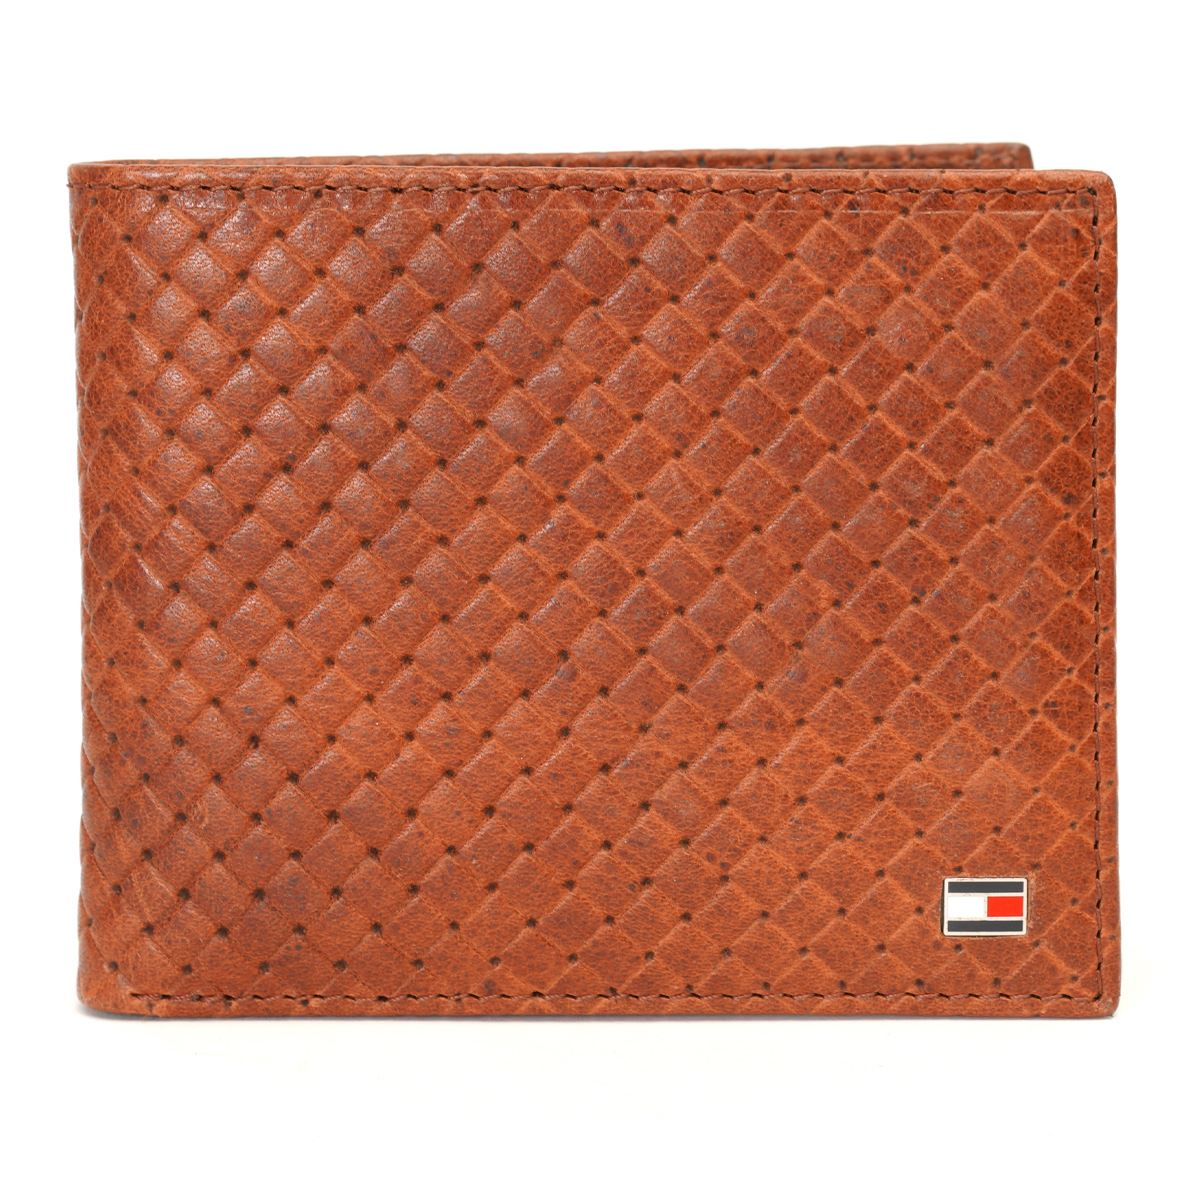 Tommy Hilfiger Leather Mens Textured Brown Jackery Passcase Wallet